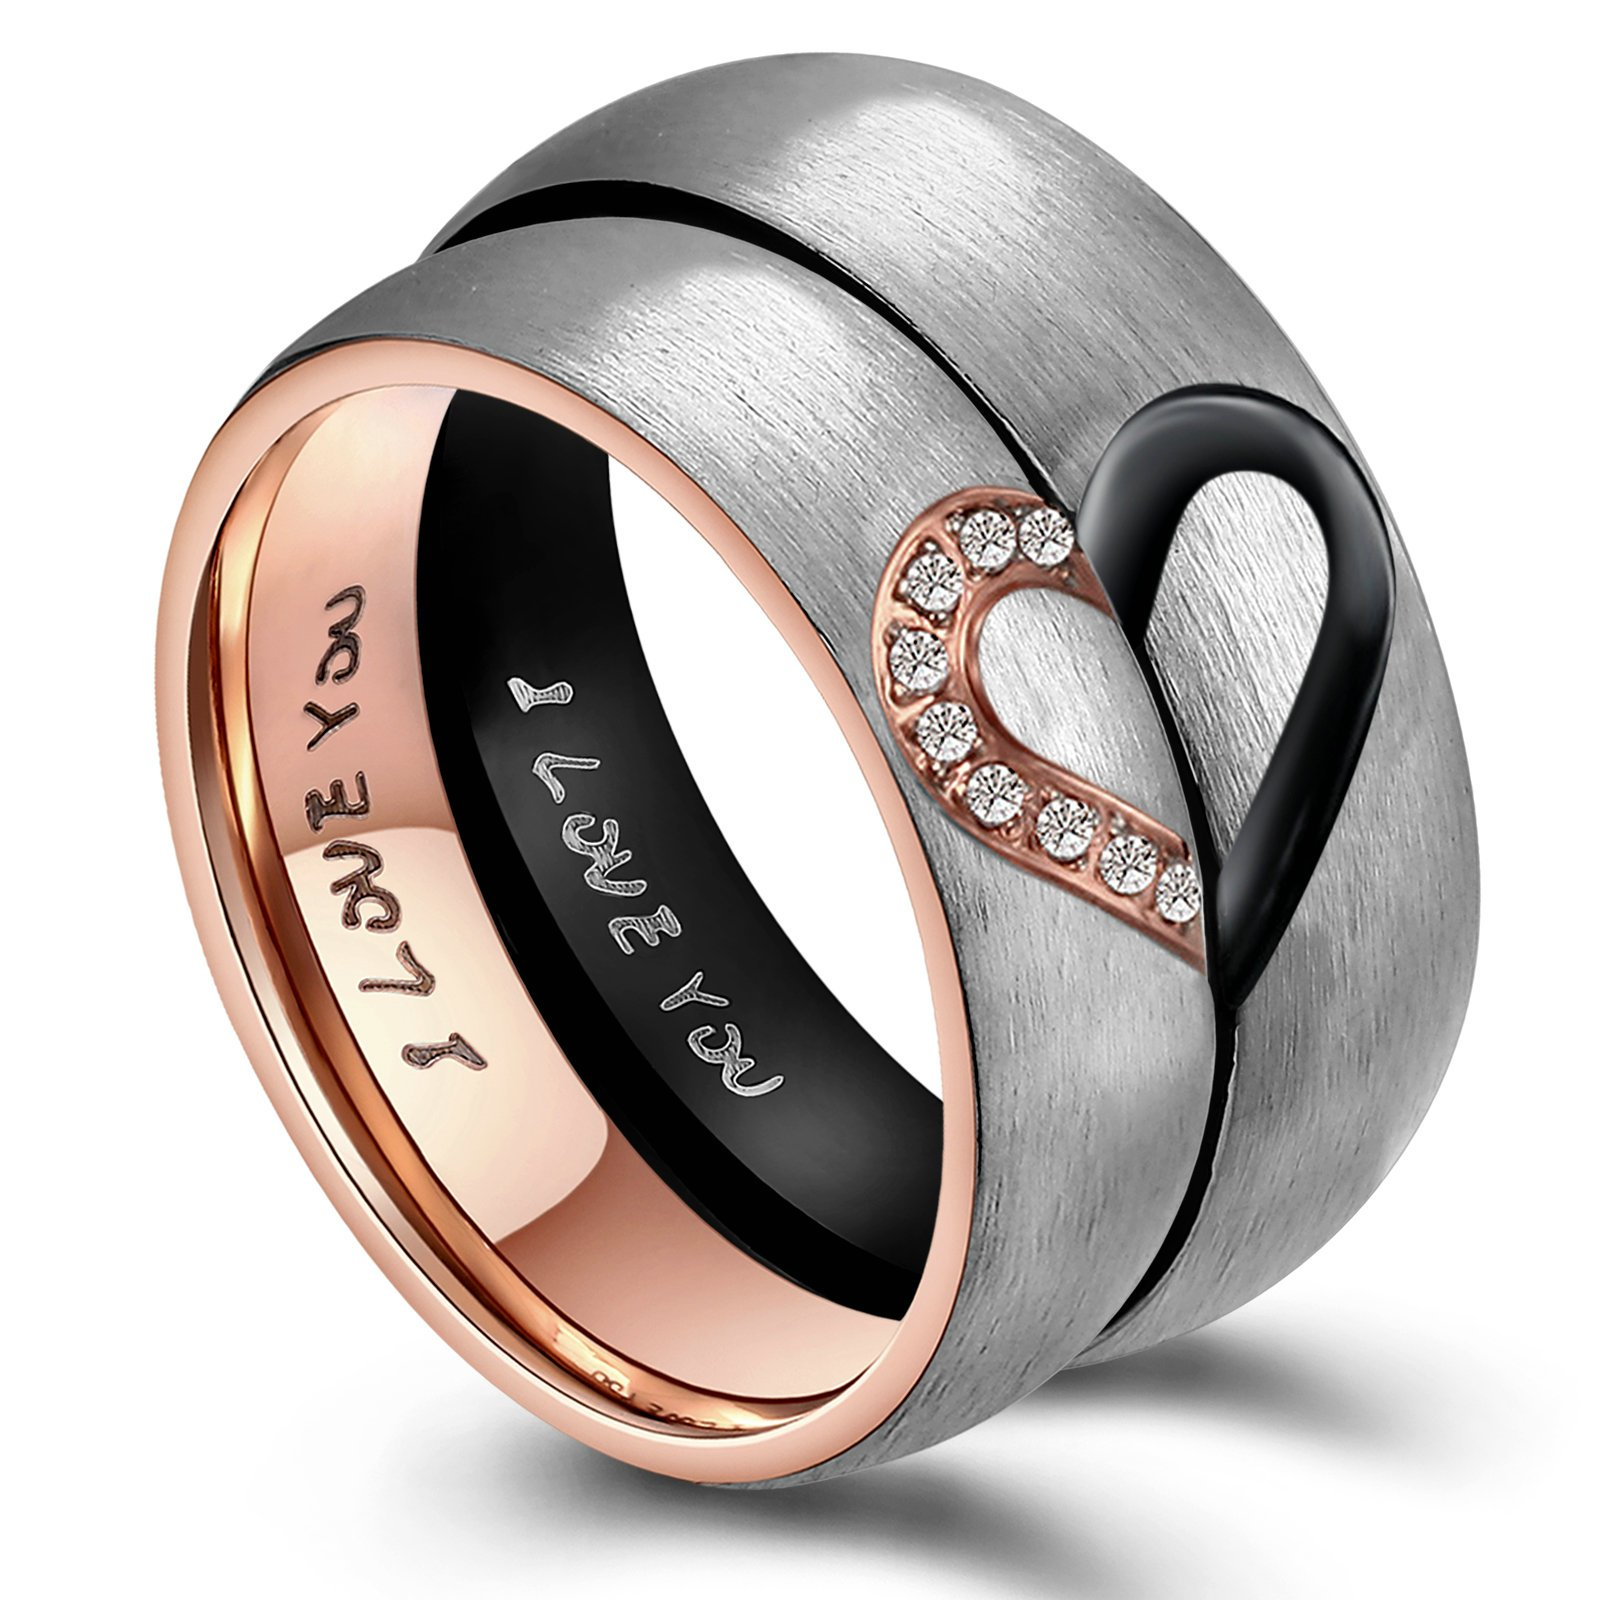 ANAZOZ Hers & Women's Stainless Steel for Real Love Heart Promise Ring Wedding Engagement Bands 6MM US Size 7 by ANAZOZ